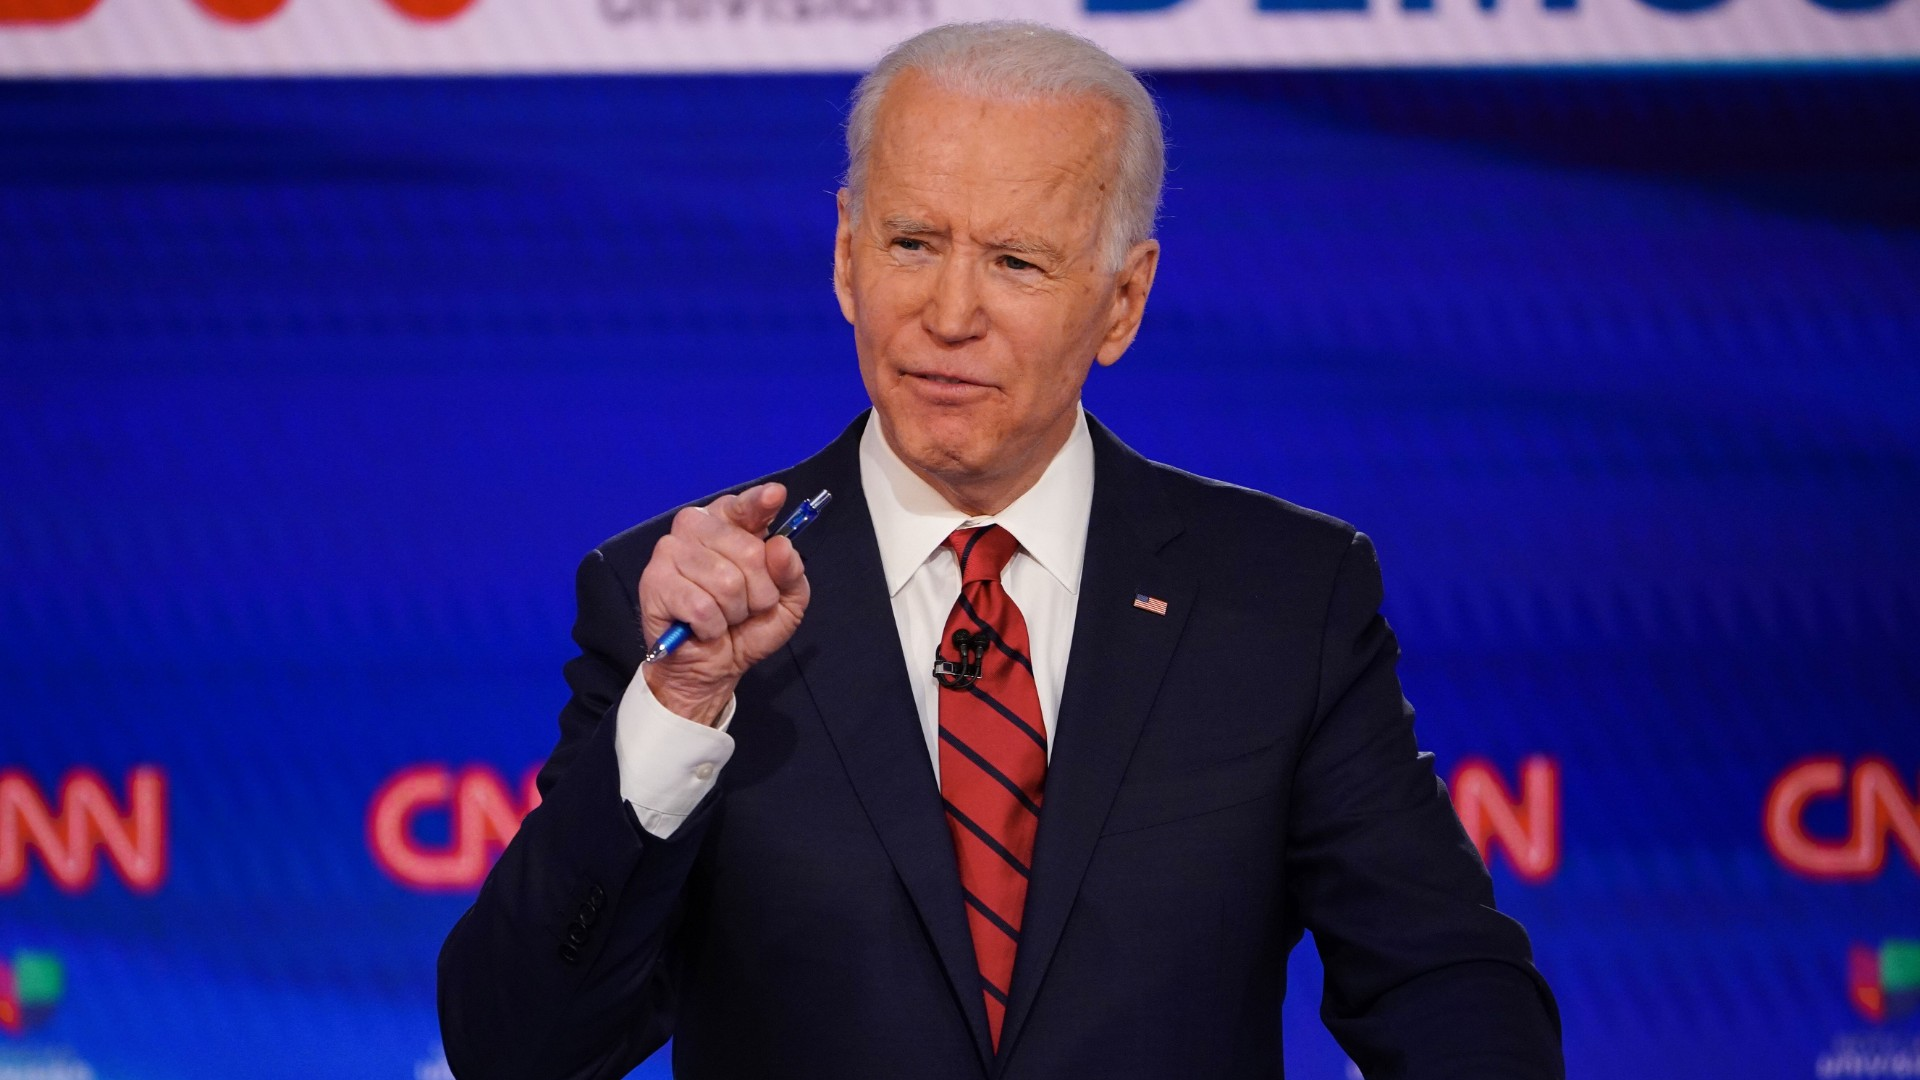 Democratic presidential hopeful former US vice president Joe Biden participates in the 11th Democratic Party 2020 presidential debate in a CNN Washington Bureau studio in Washington, DC on March 15, 2020. (MANDEL NGAN/AFP via Getty Images)